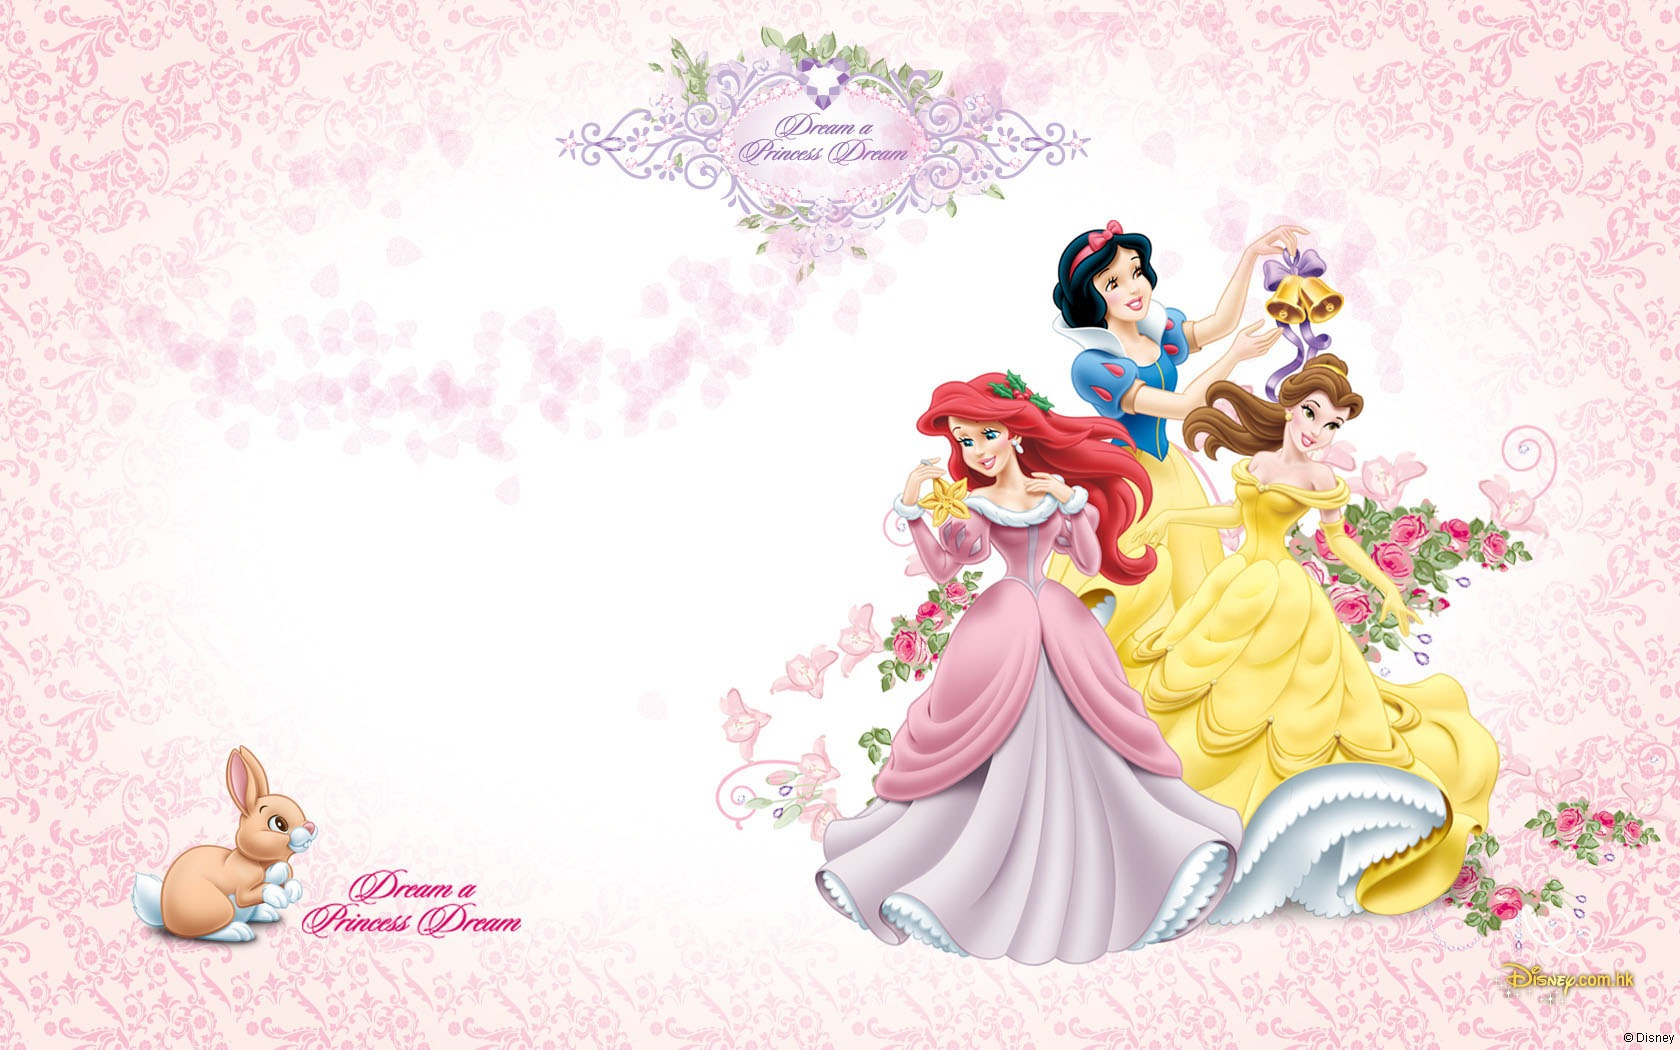 Disney Princess invitation picture Disney Princess invitation image